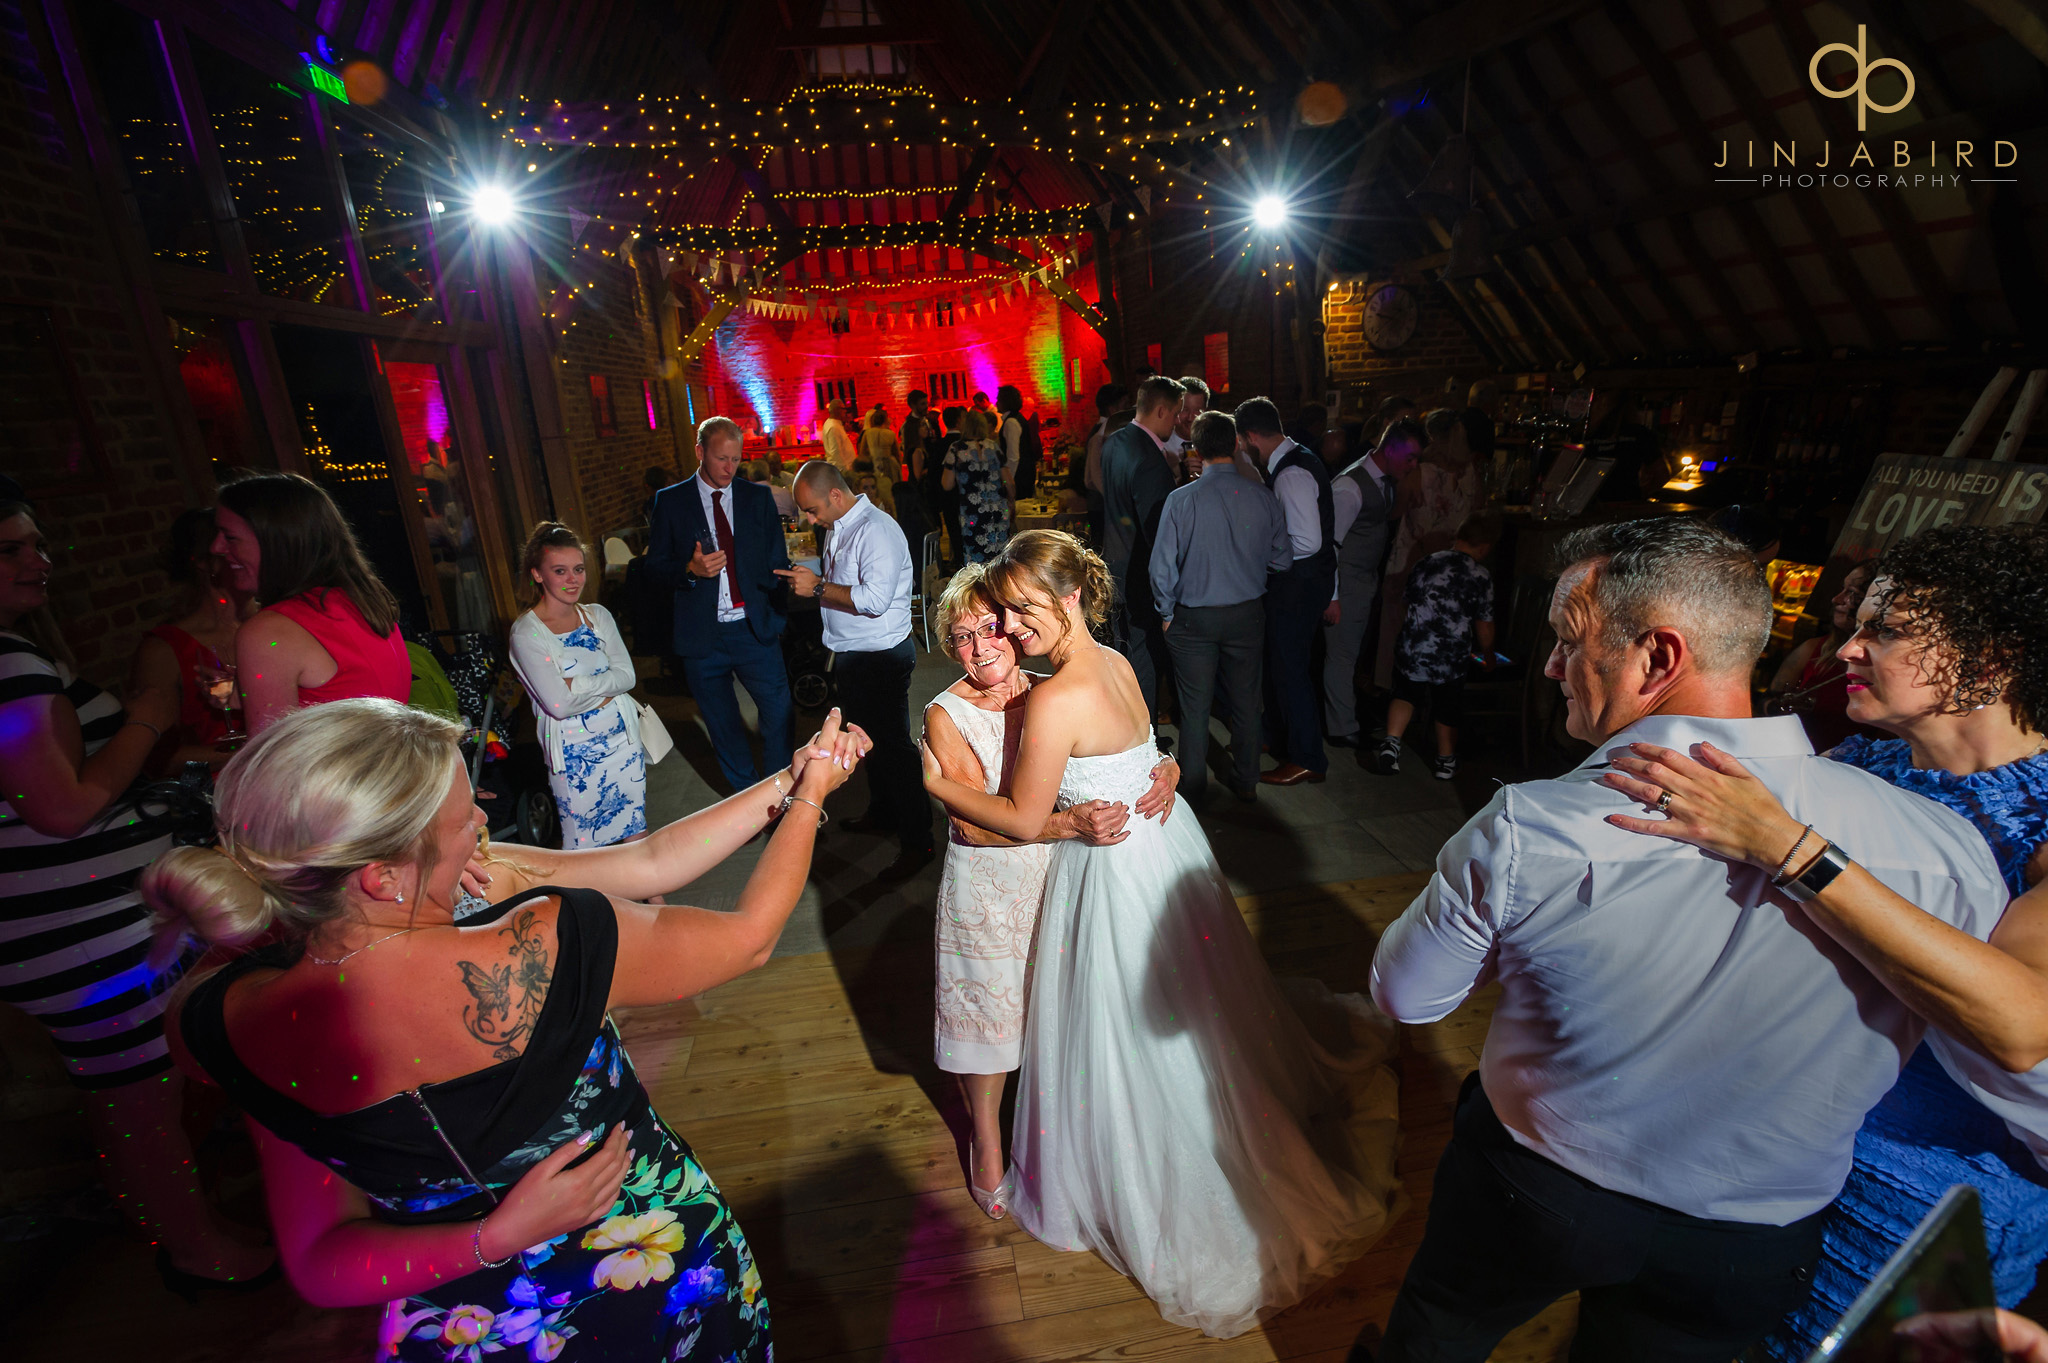 evening wedding reception thatch barn yelling